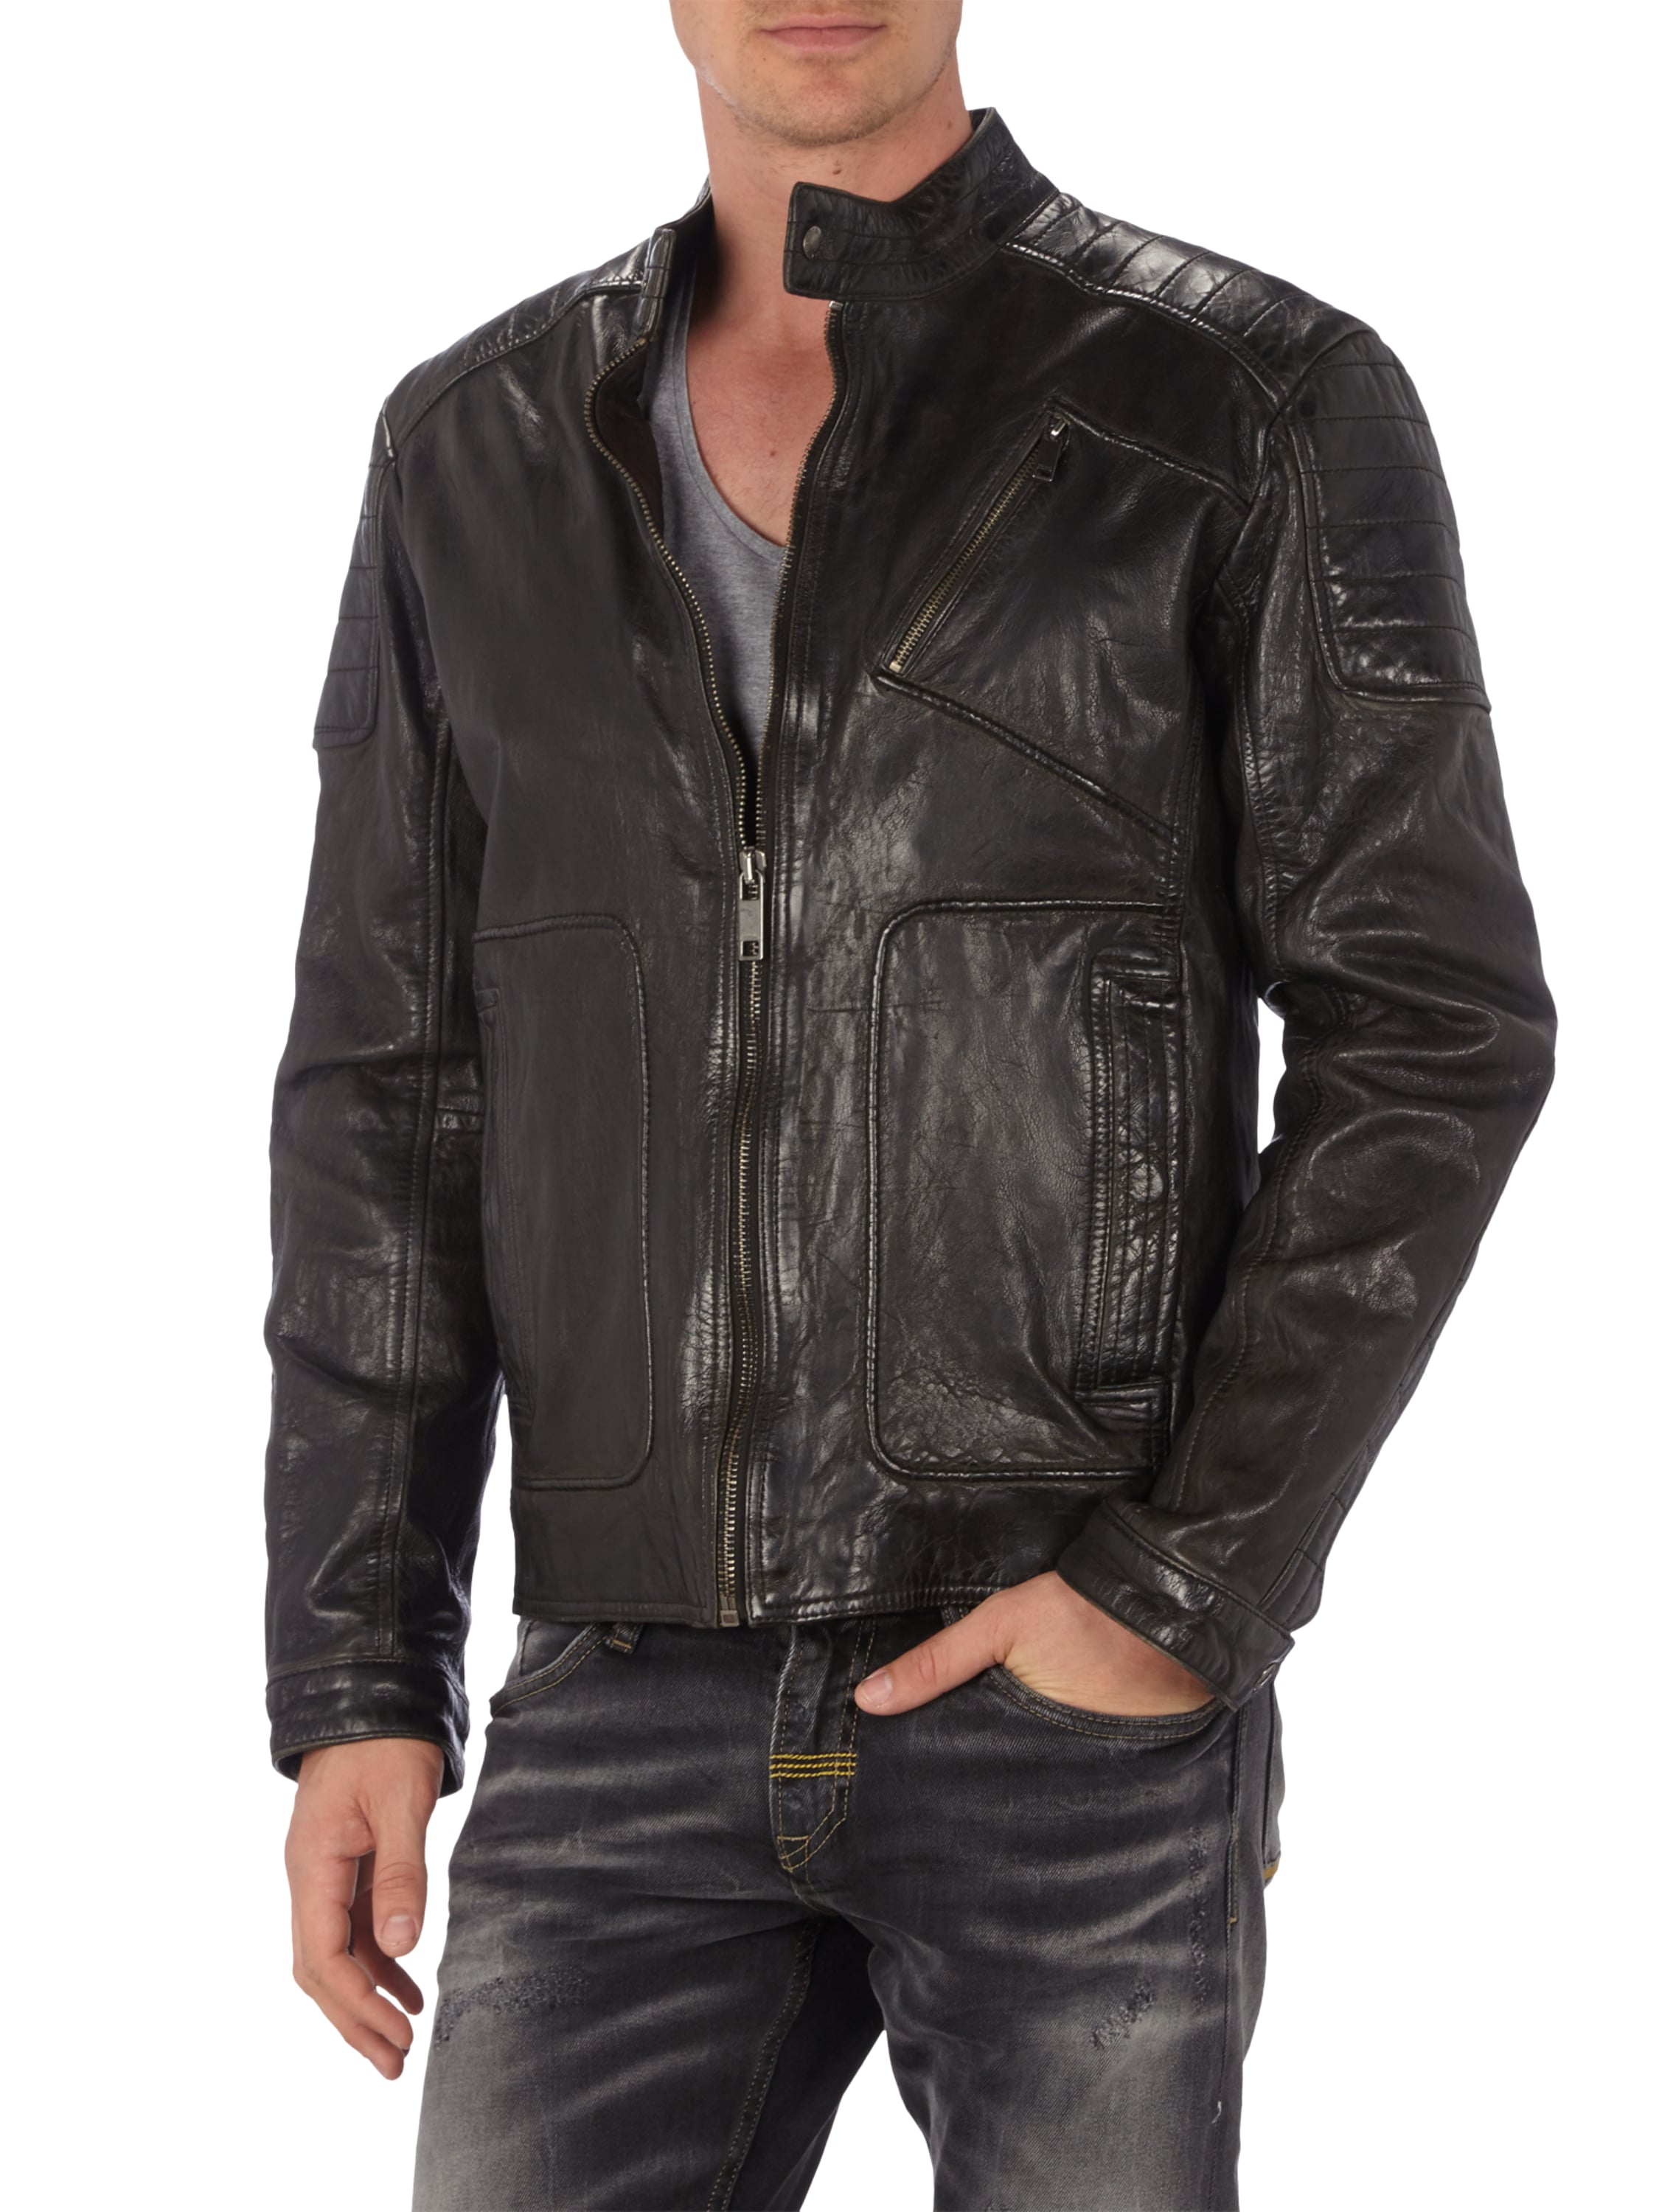 mcneal lederjacke im biker look in grau schwarz online. Black Bedroom Furniture Sets. Home Design Ideas